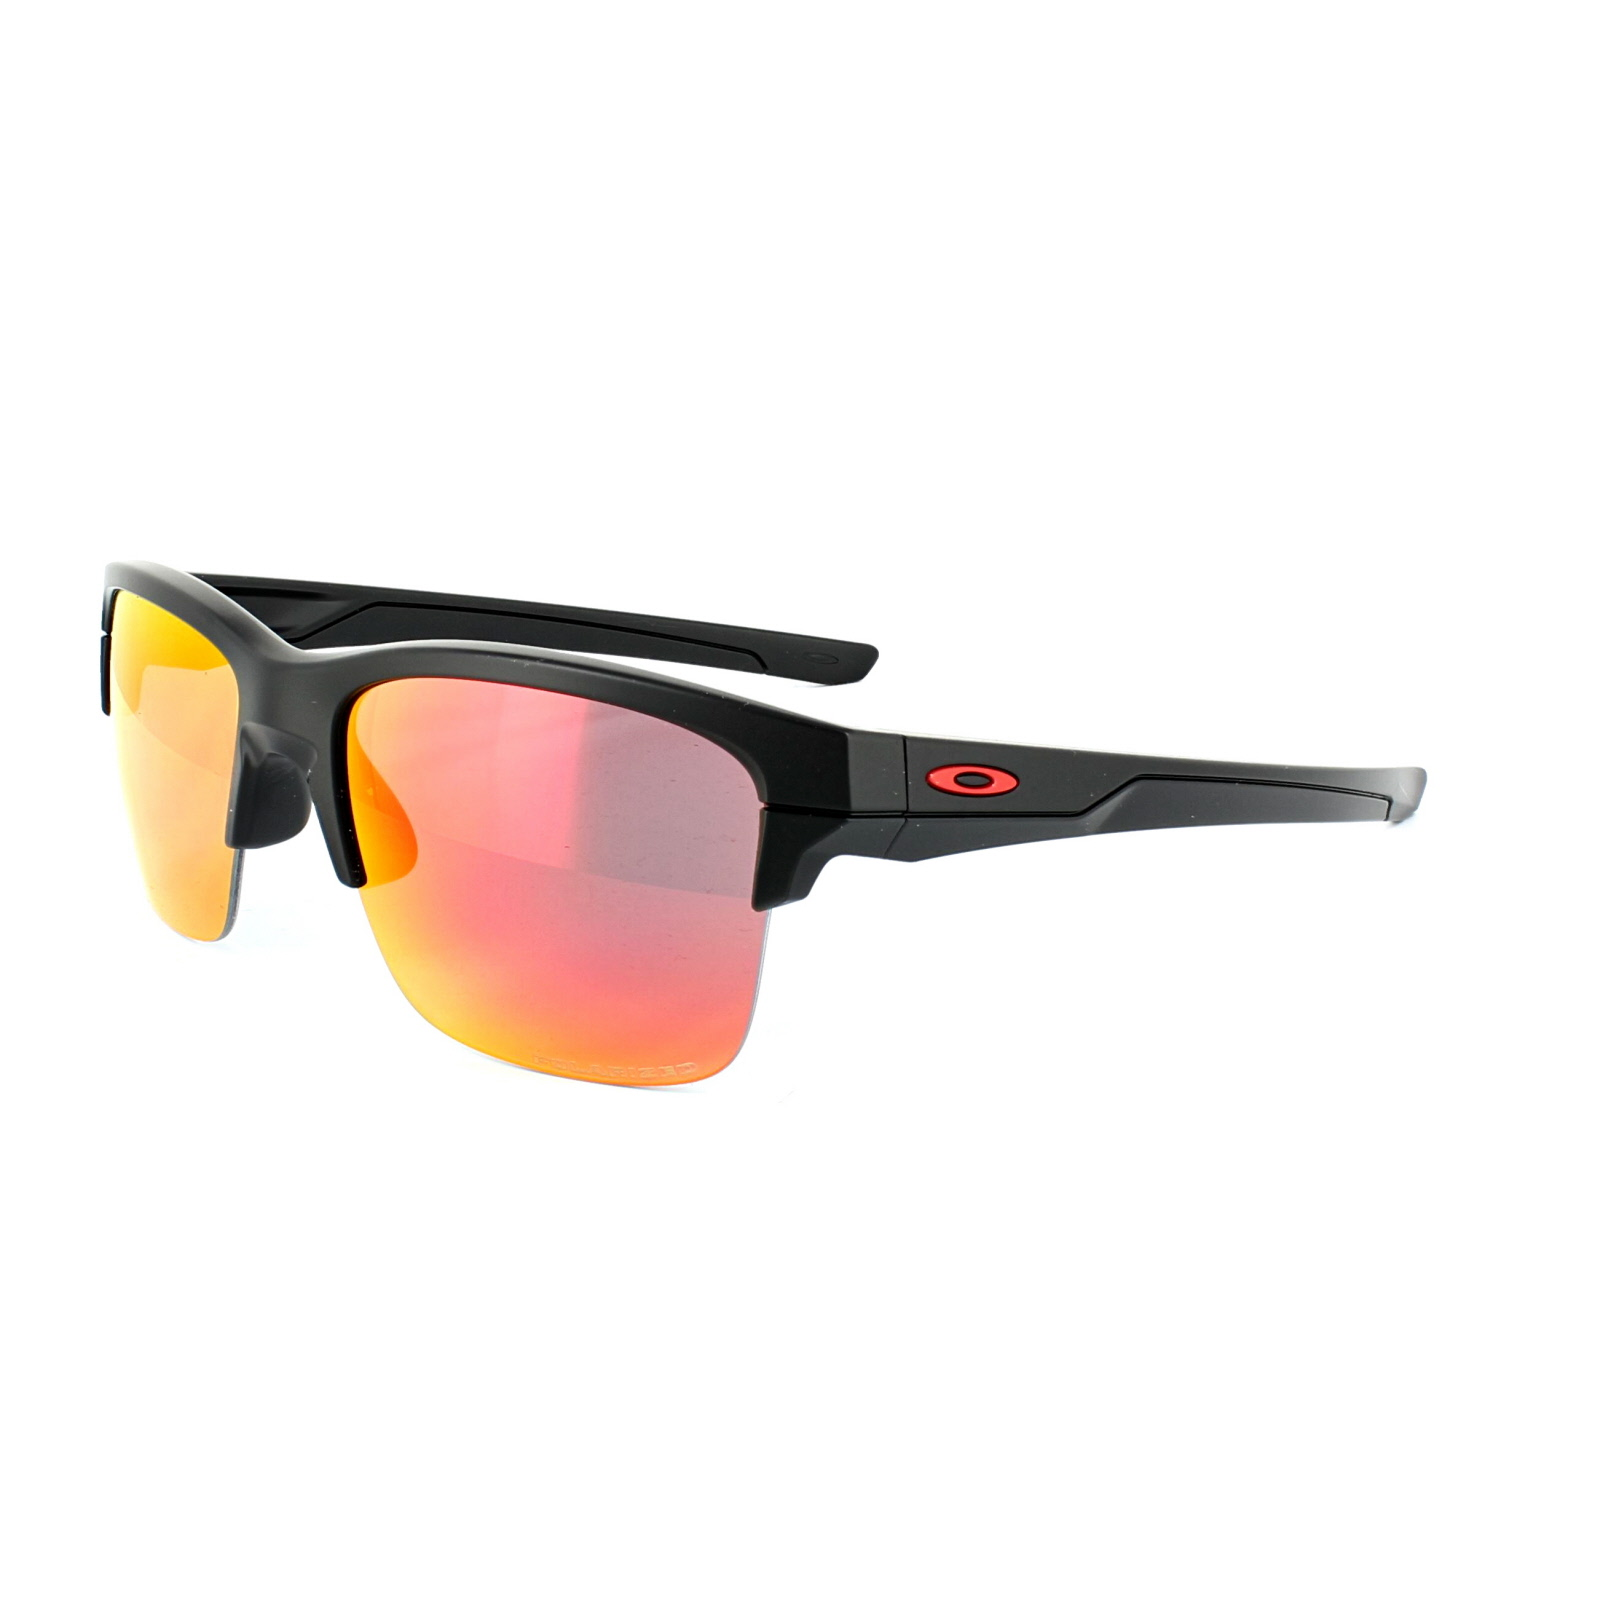 9b2f900c2b3 Sentinel Oakley Sunglasses Thinlink OO9316-07 Matt Black Torch Iridium  Polarized